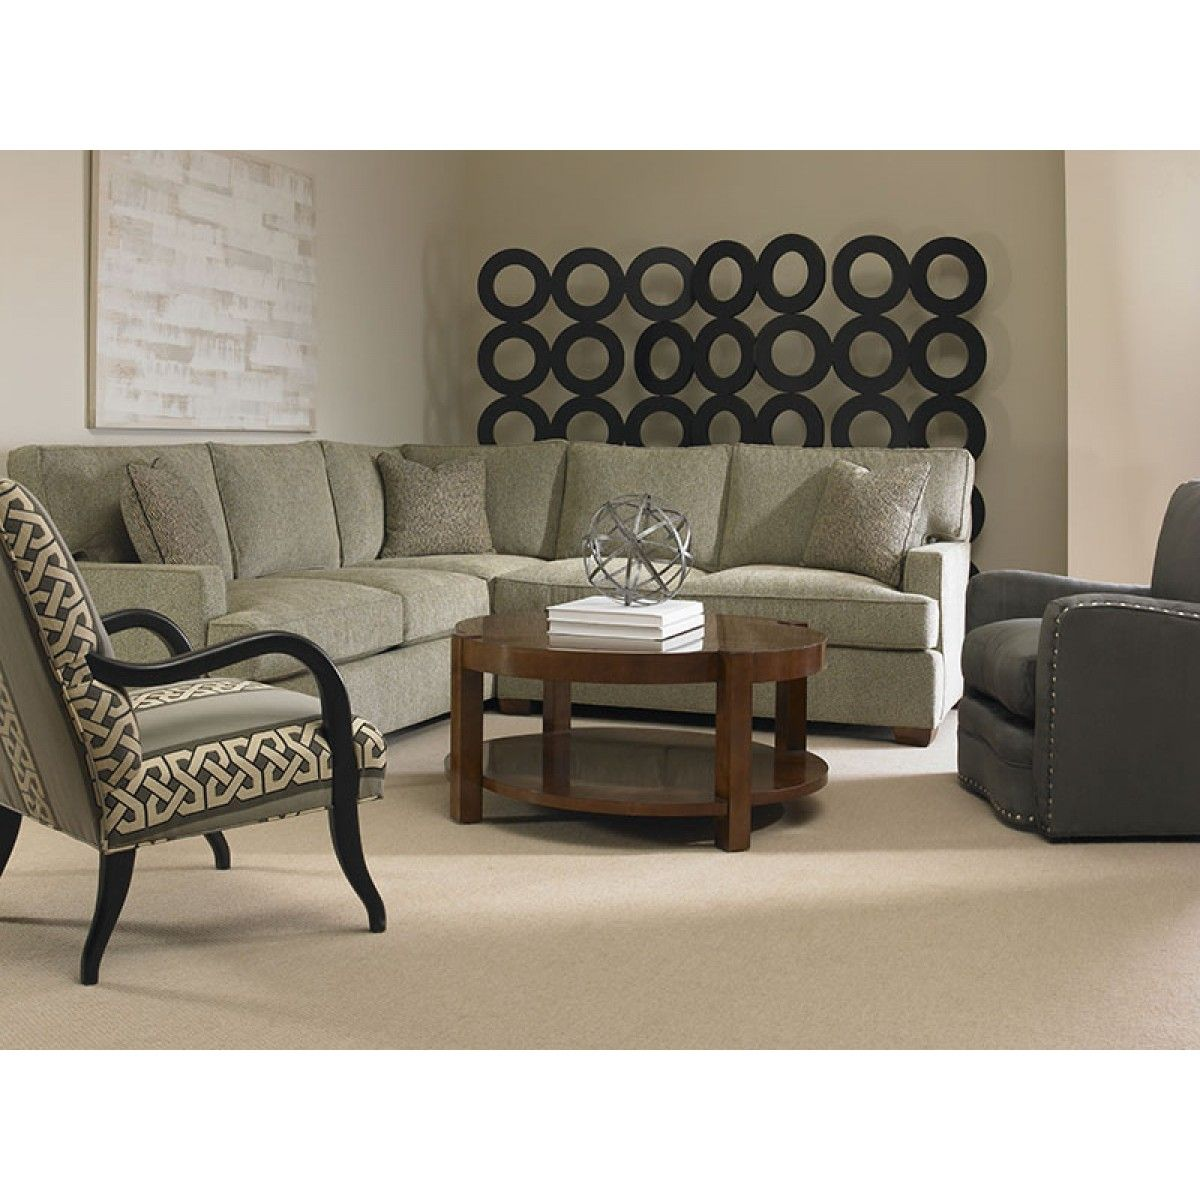 Century Furniture only has one standard  The Best . Which means only the finest materials the best designs and the supreme craftsmanship are used when ...  sc 1 st  Pinterest : century furniture sectional - Sectionals, Sofas & Couches